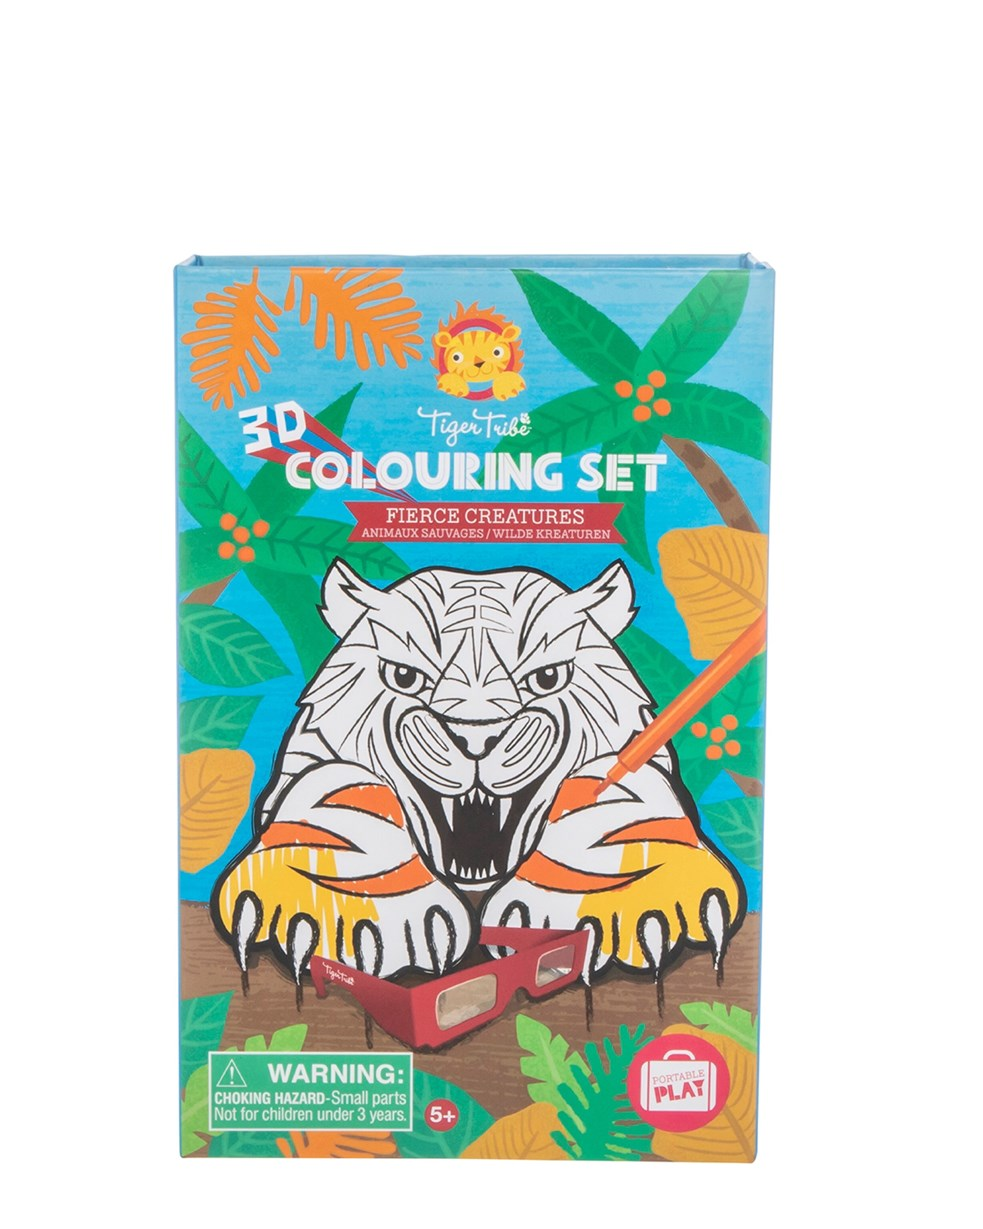 Tiger Tribe 3D Coloring Set - Fierce Creatures